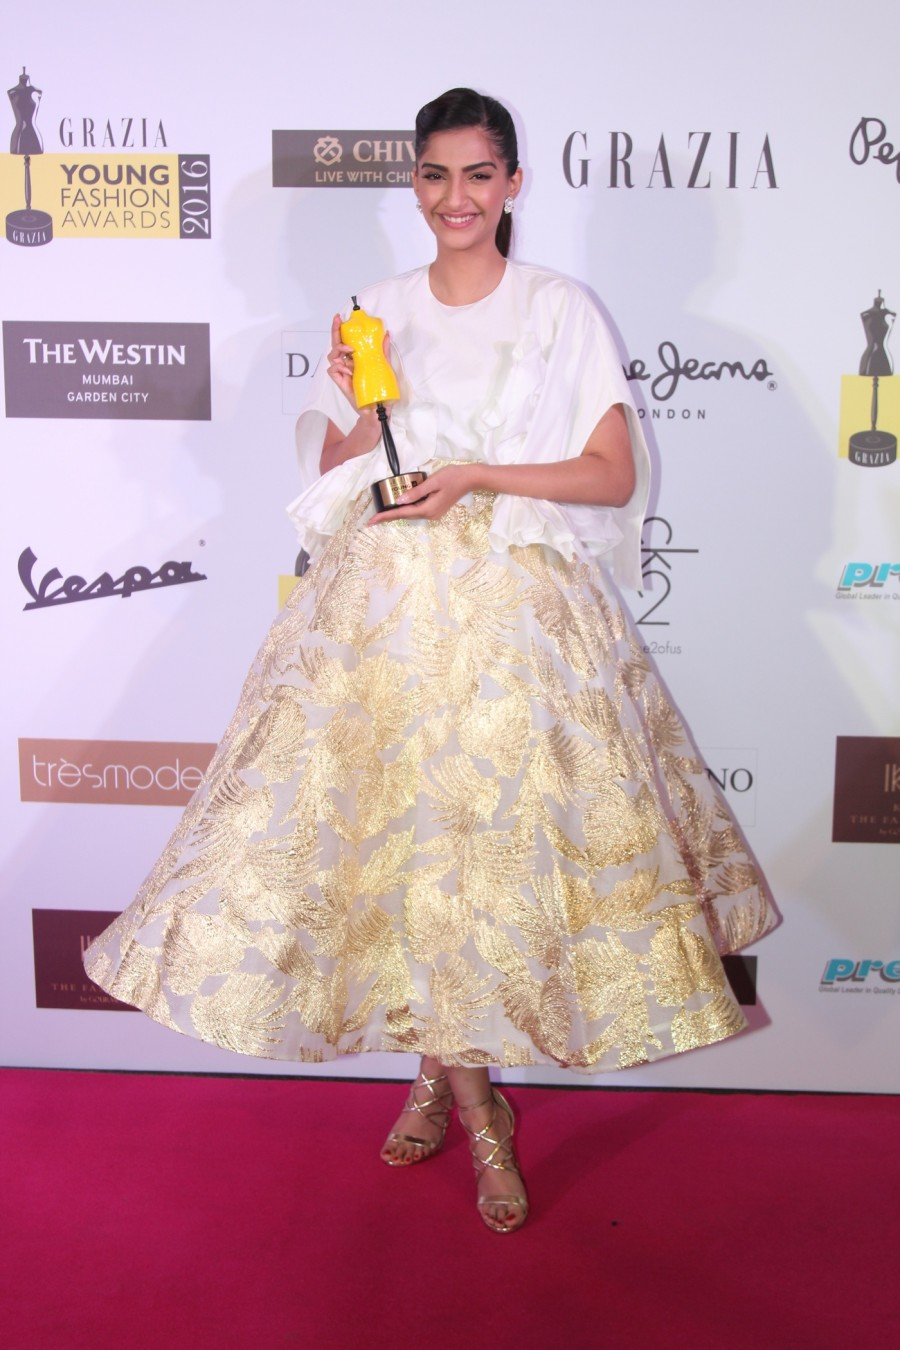 Grazia Young Fashion Awards,Grazia Young Fashion Awards 2015,Grazia Young,Sonam Kapoor,Taapsee Pannu,Sonakshi Sinha,Abhishek Kapoor,Aditi Rao Hydari,Athiya Shetty,Neha Dhupia,Raman Lamba